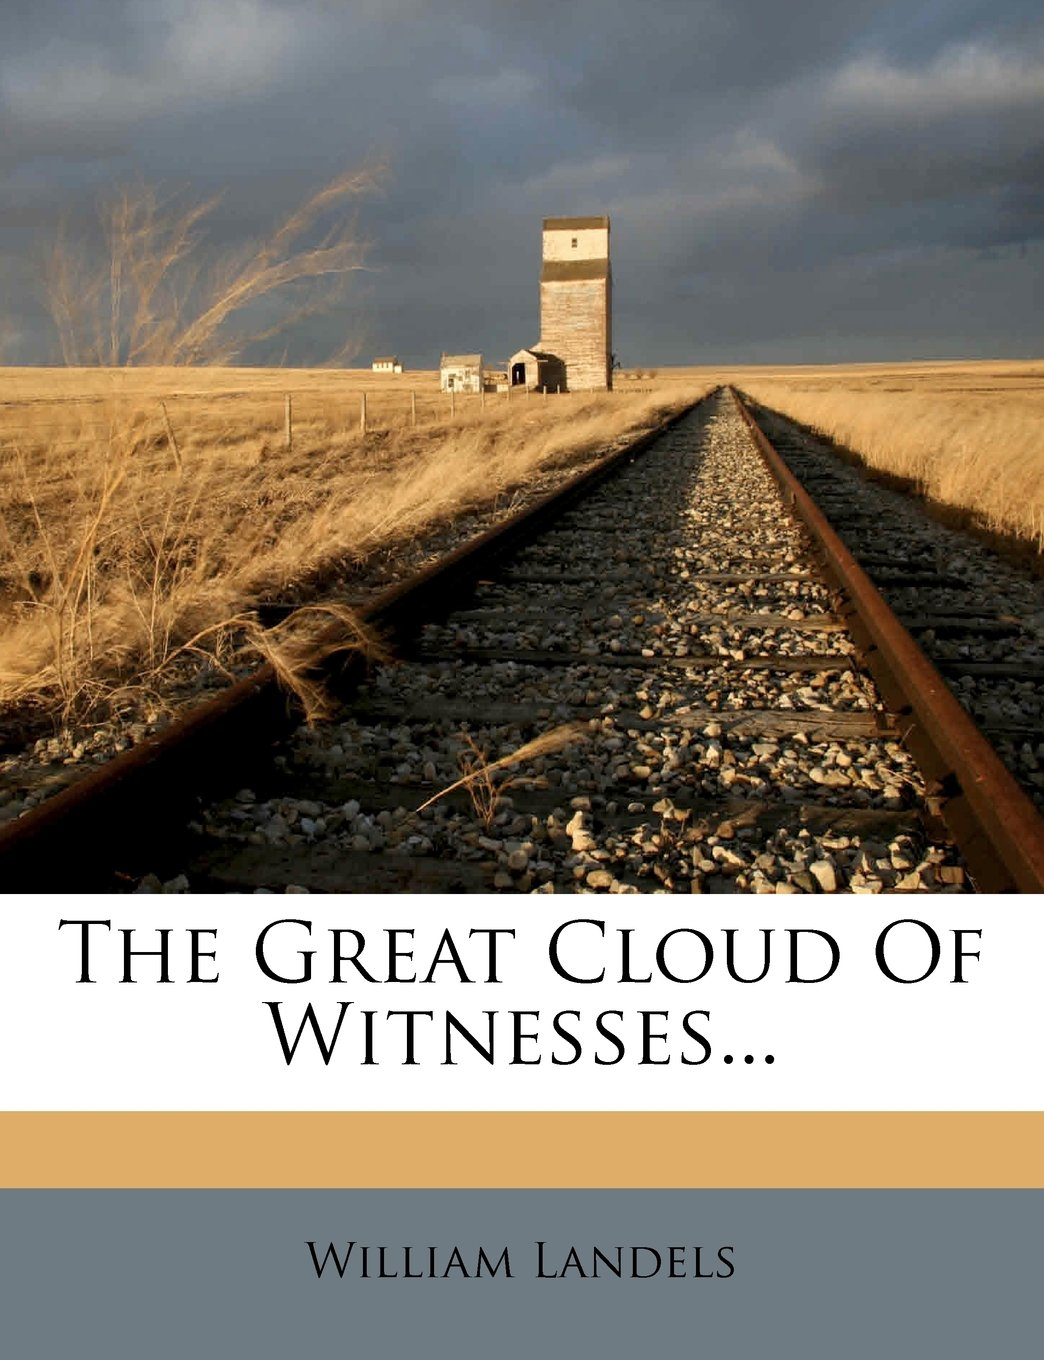 Download The Great Cloud Of Witnesses... Text fb2 book